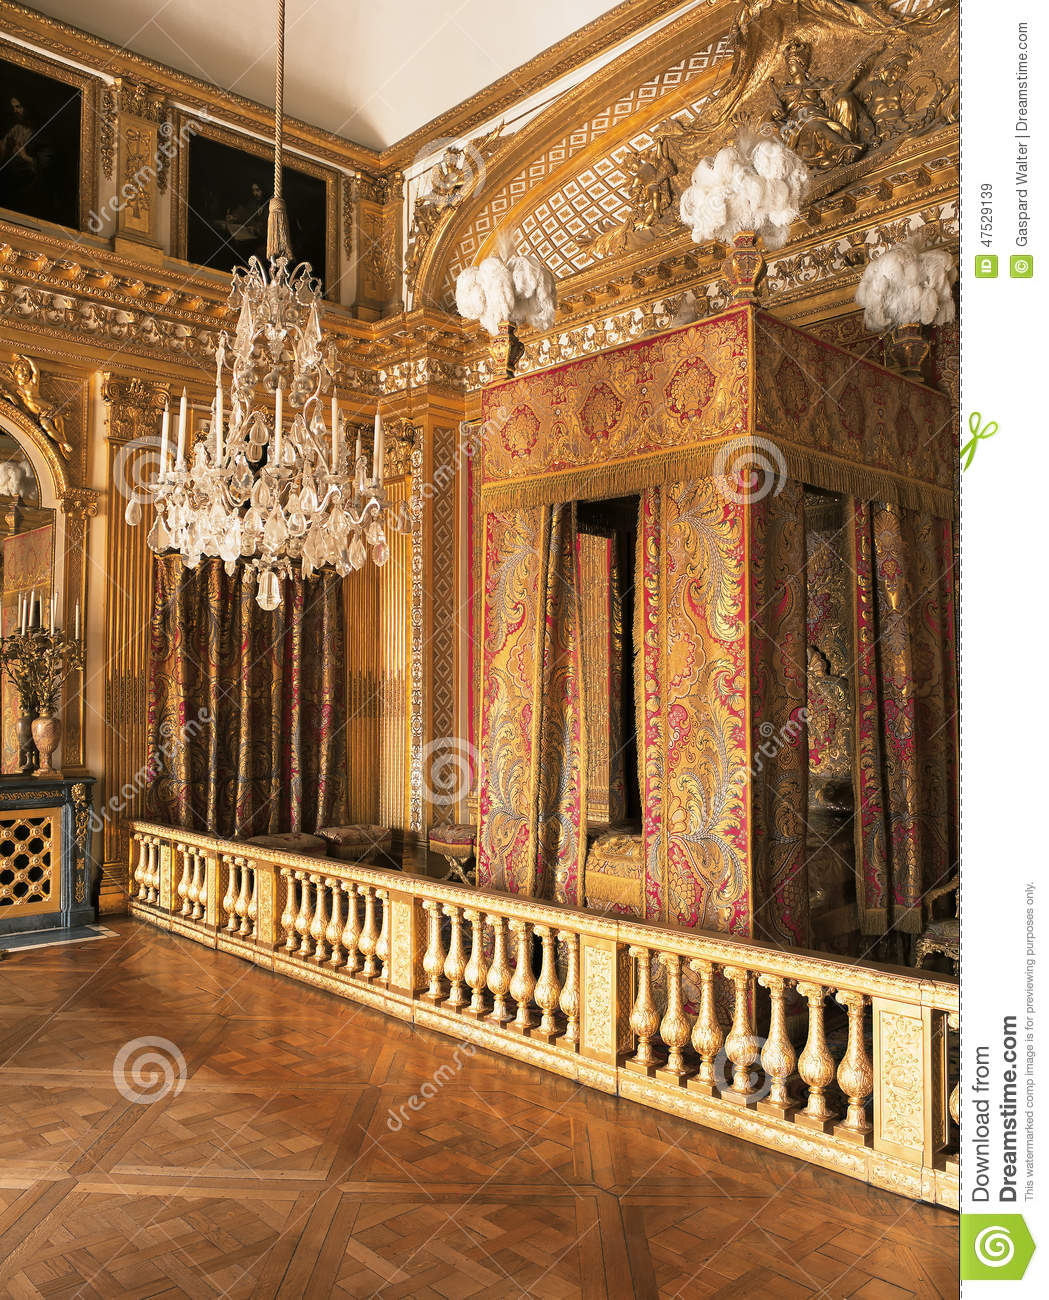 Chambre Bebe Meuble Taupe : King Louis XIV bedroom at Versailles Palace, France Editorial Stock